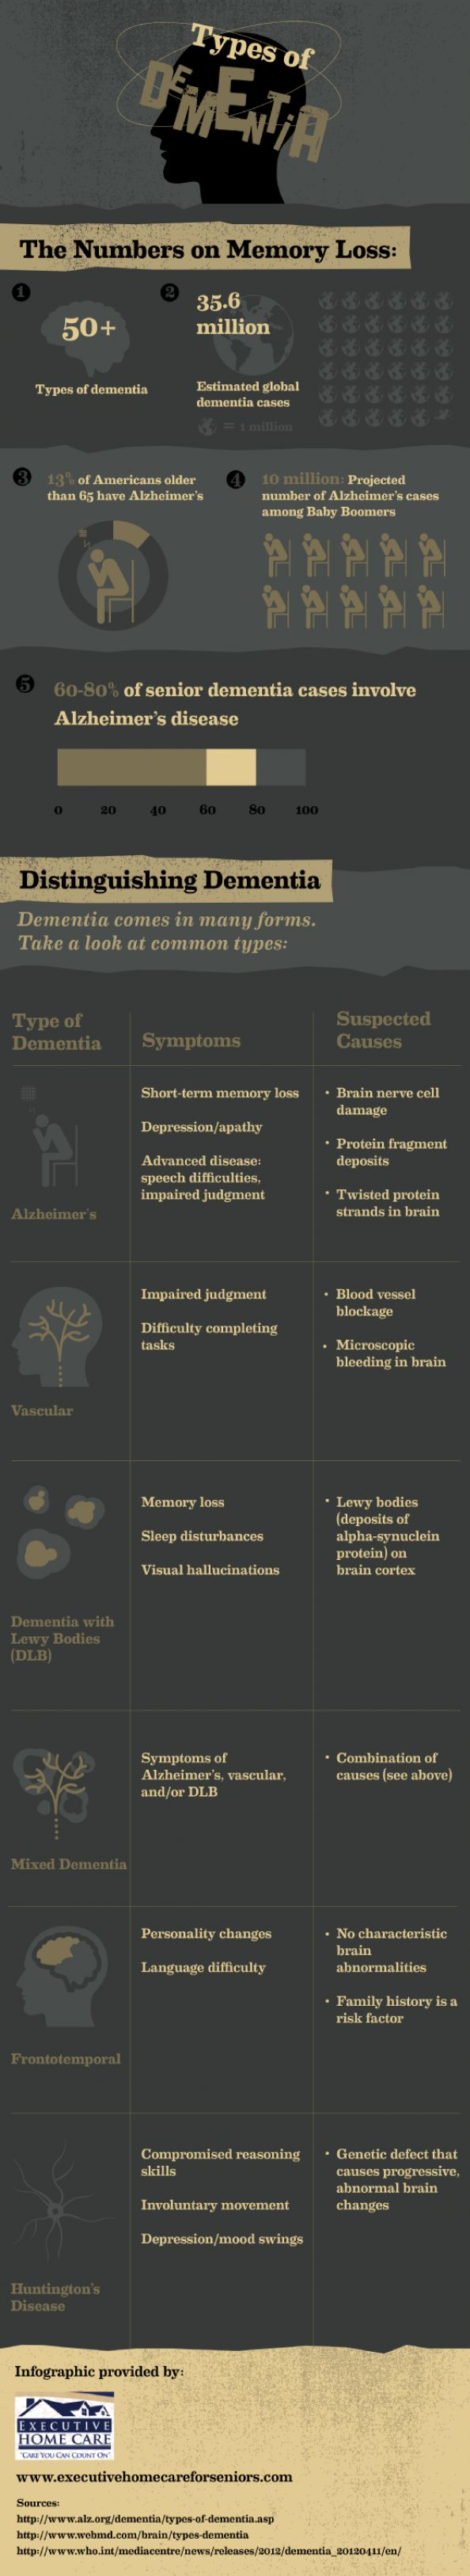 Types of #Dementia #alzheimers